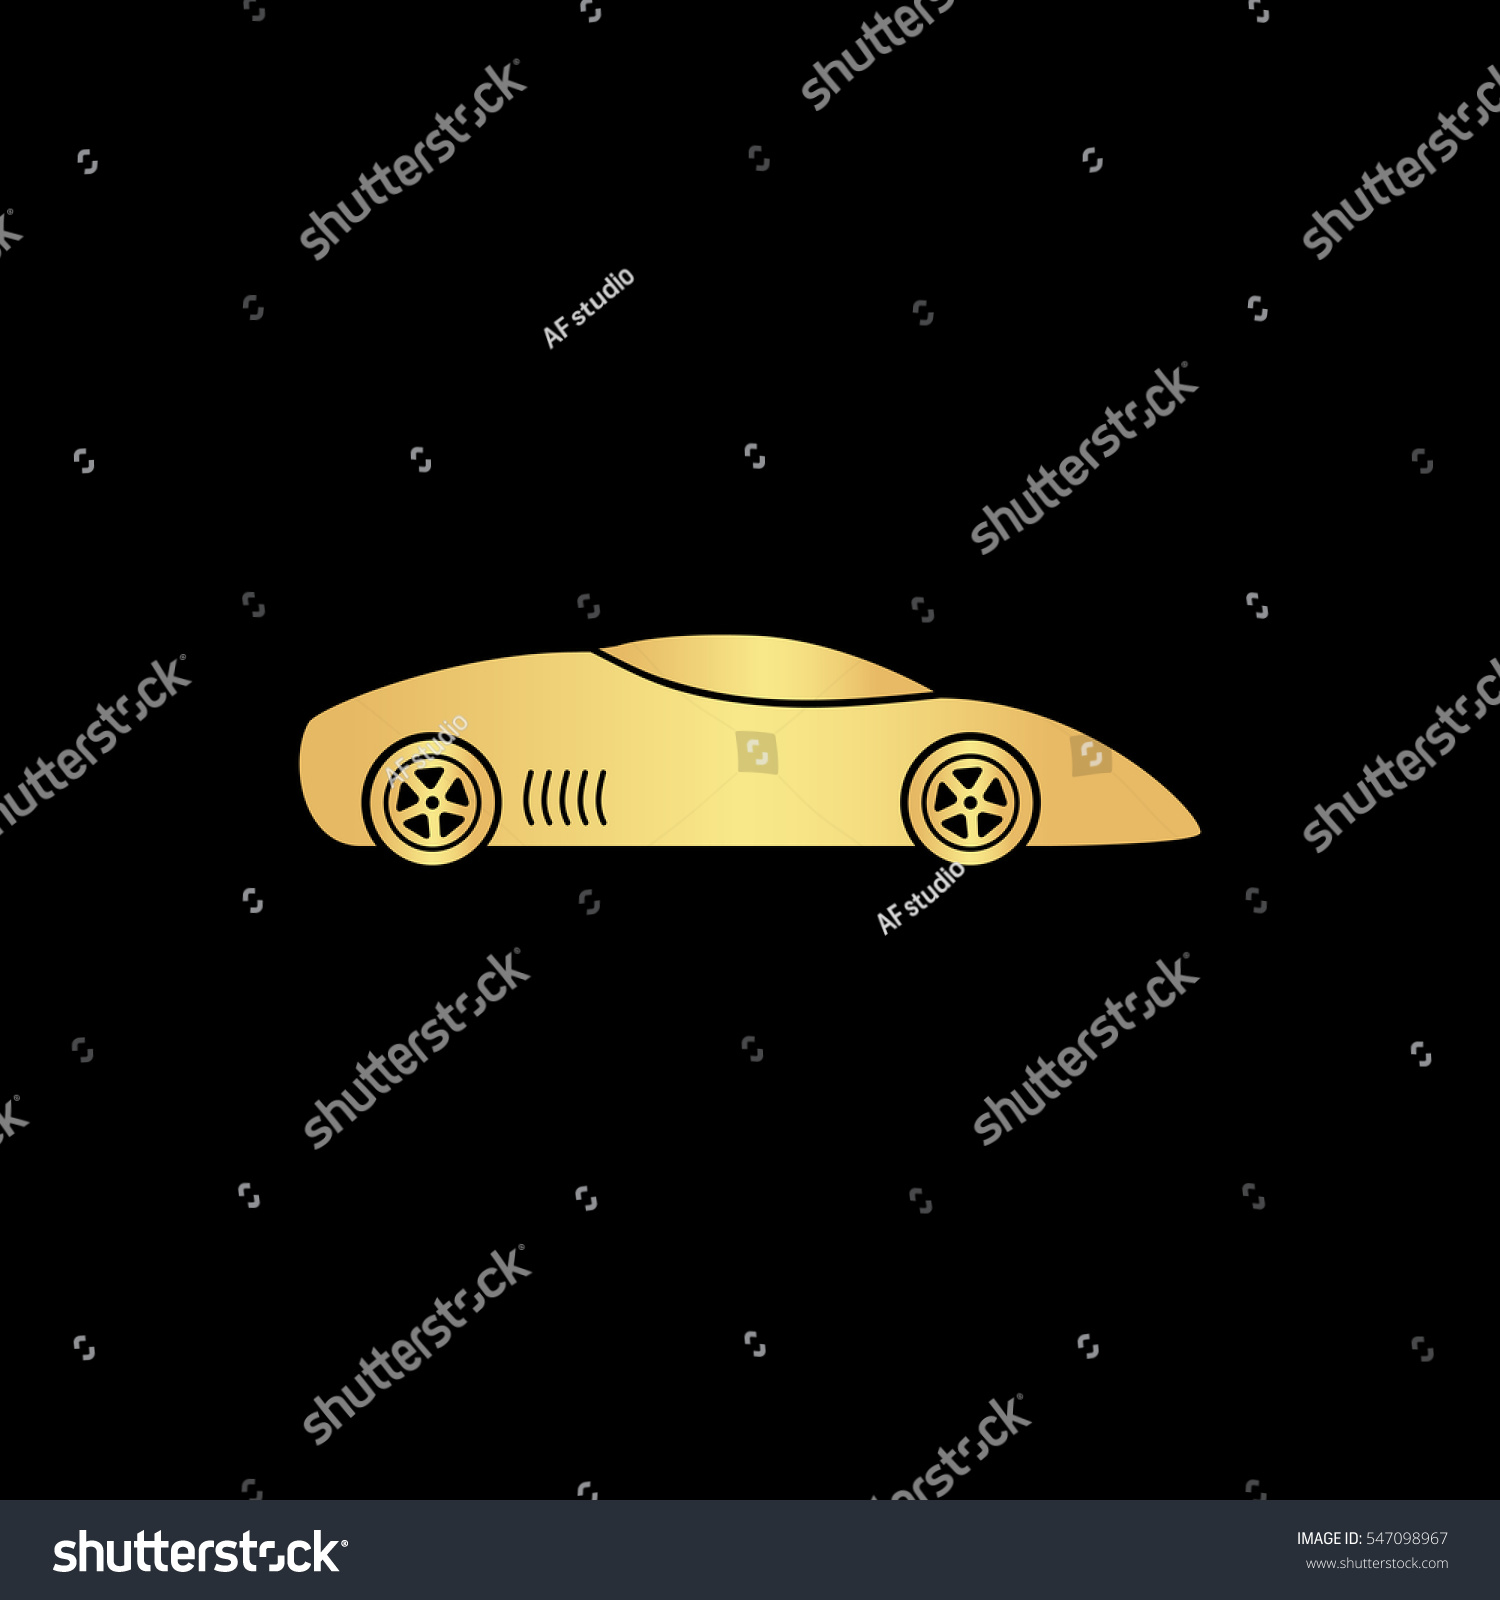 Silhouette Sport Car Racing Sports Gold Stock Vector 2018